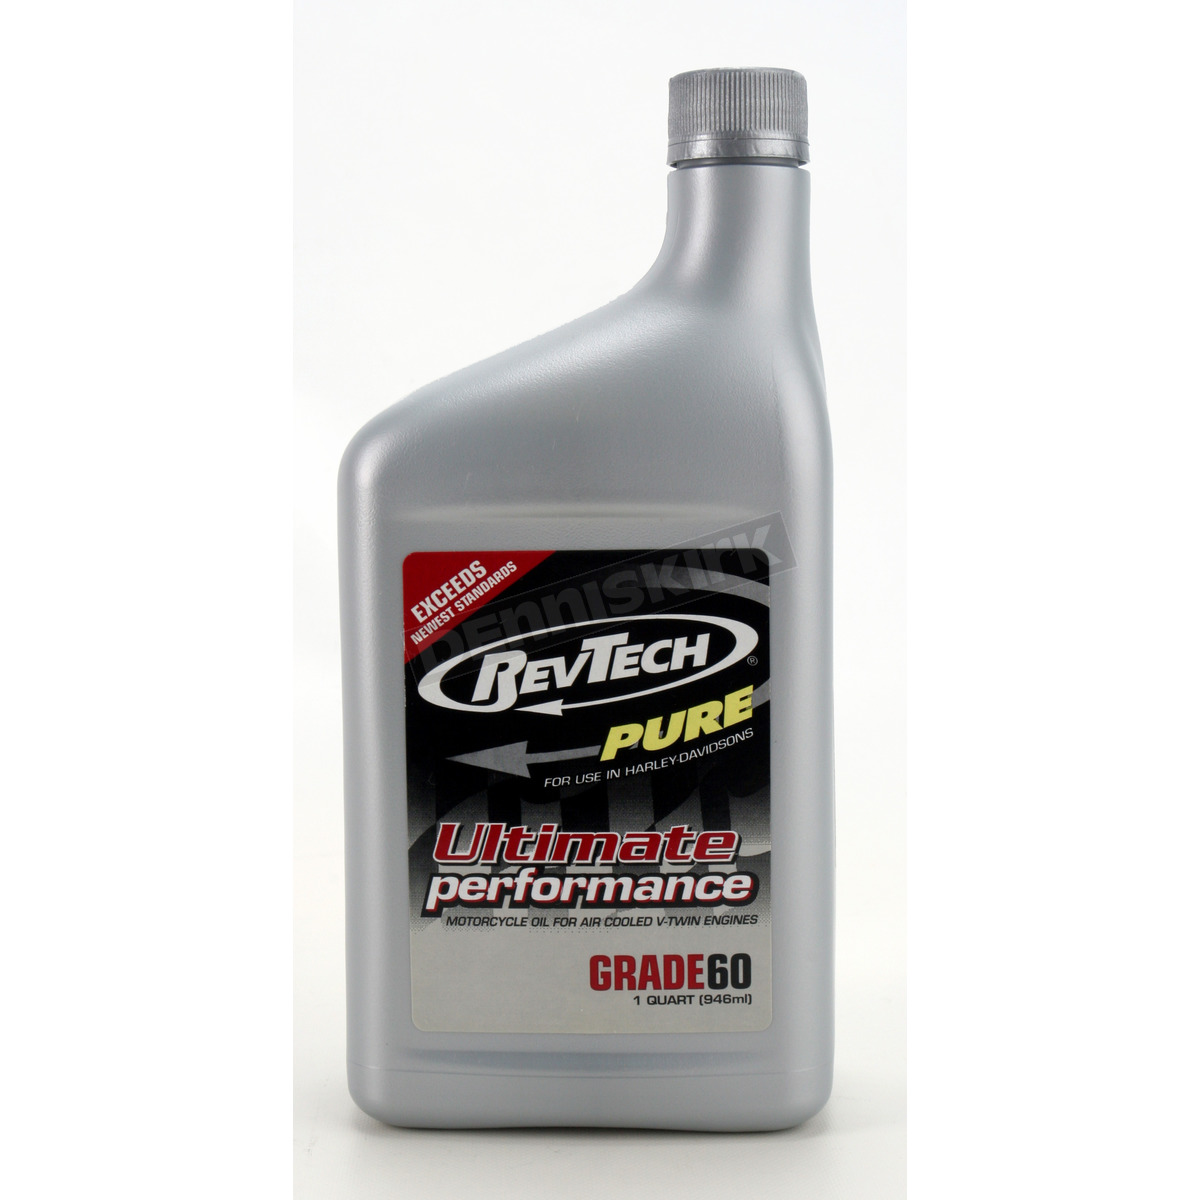 Revtech pure motor oil 35304 harley motorcycle dennis for Pure synthetic motor oil